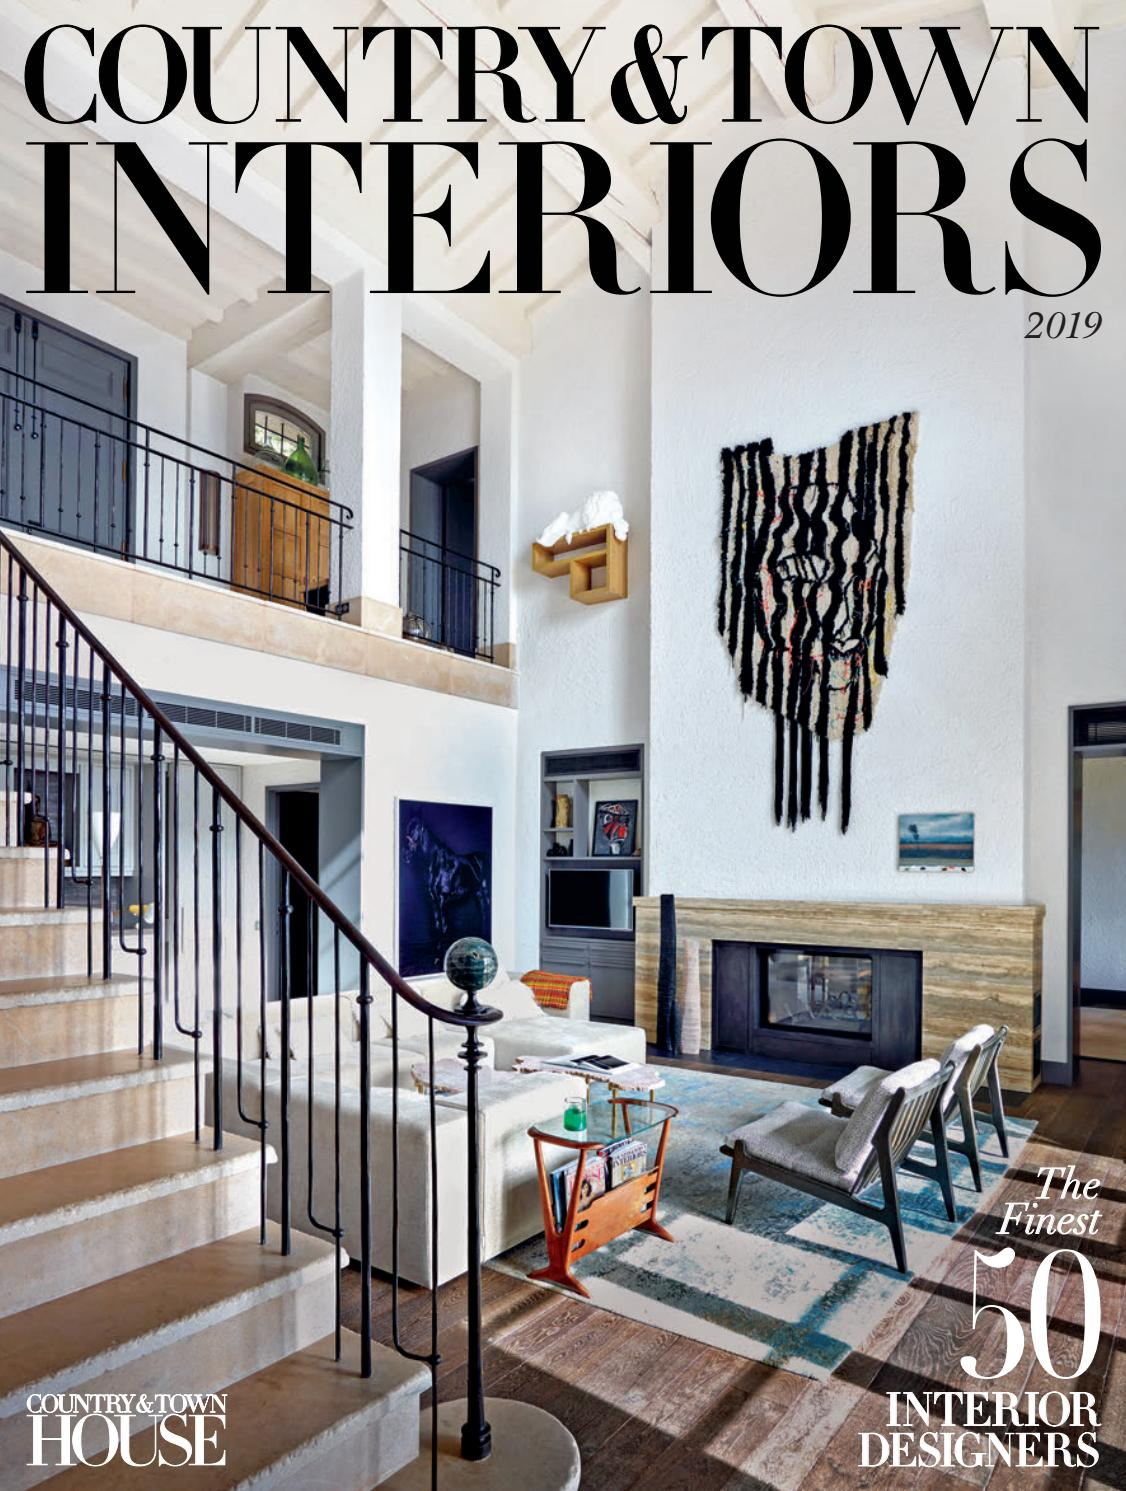 Country u0026 Town Interiors 2019 by Country u0026 Town House Magazine - issuu